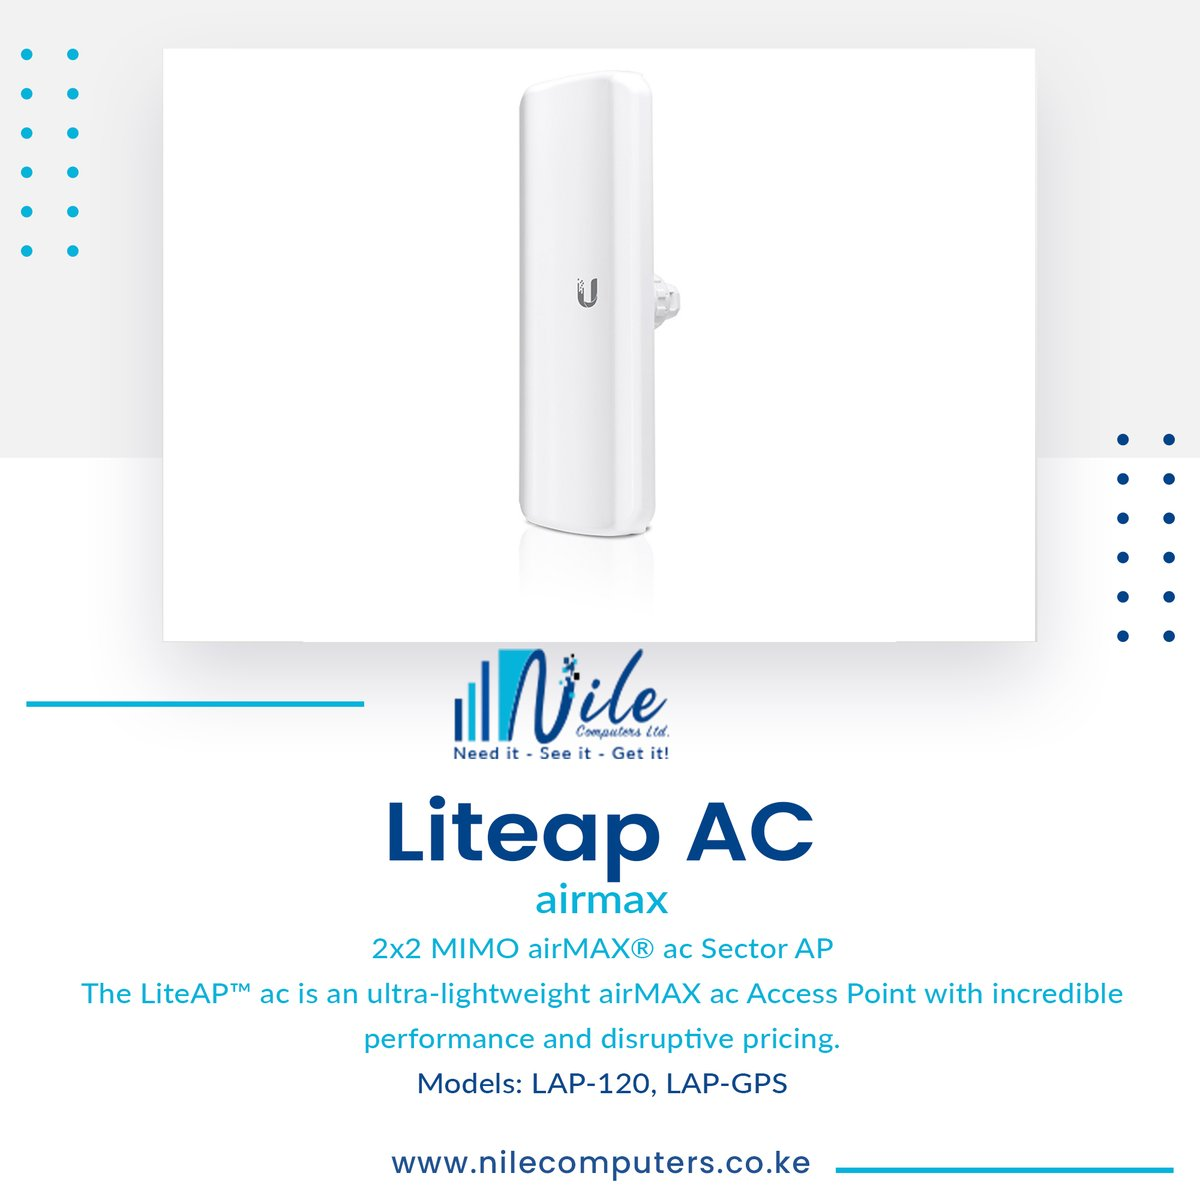 Distributor for Mikrotik, Ubiquiti UniFi, RF-Elements and other wireless, networking and connectivity products in East Africa. https://t.co/H6LriLCejl